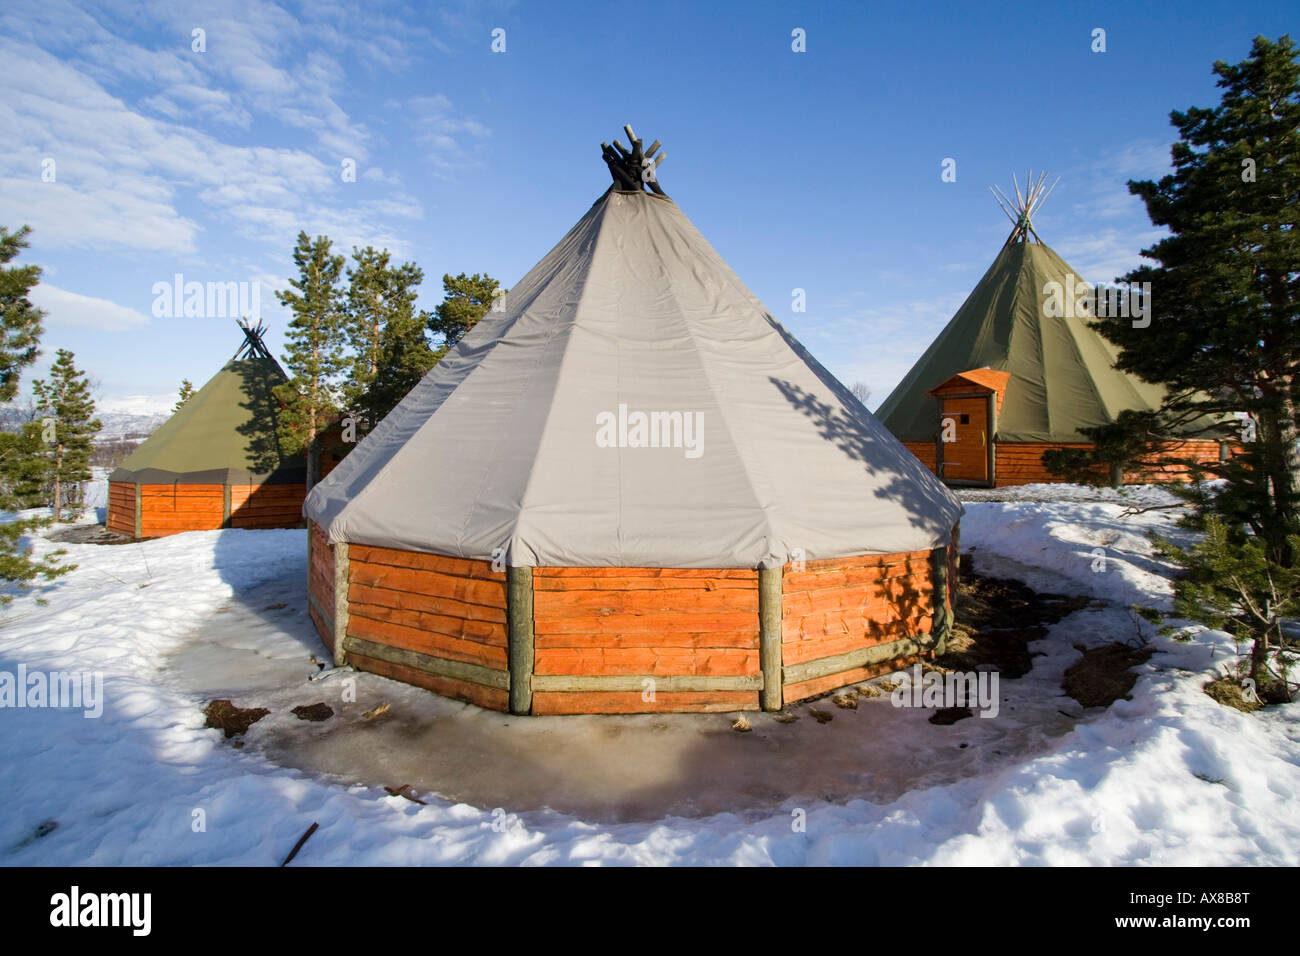 ... sami tent stock photos u0026 sami tent stock images alamy ... & 100+ [ Tent Building ] | The Tent As A Cabin As A Tent Adventure ...